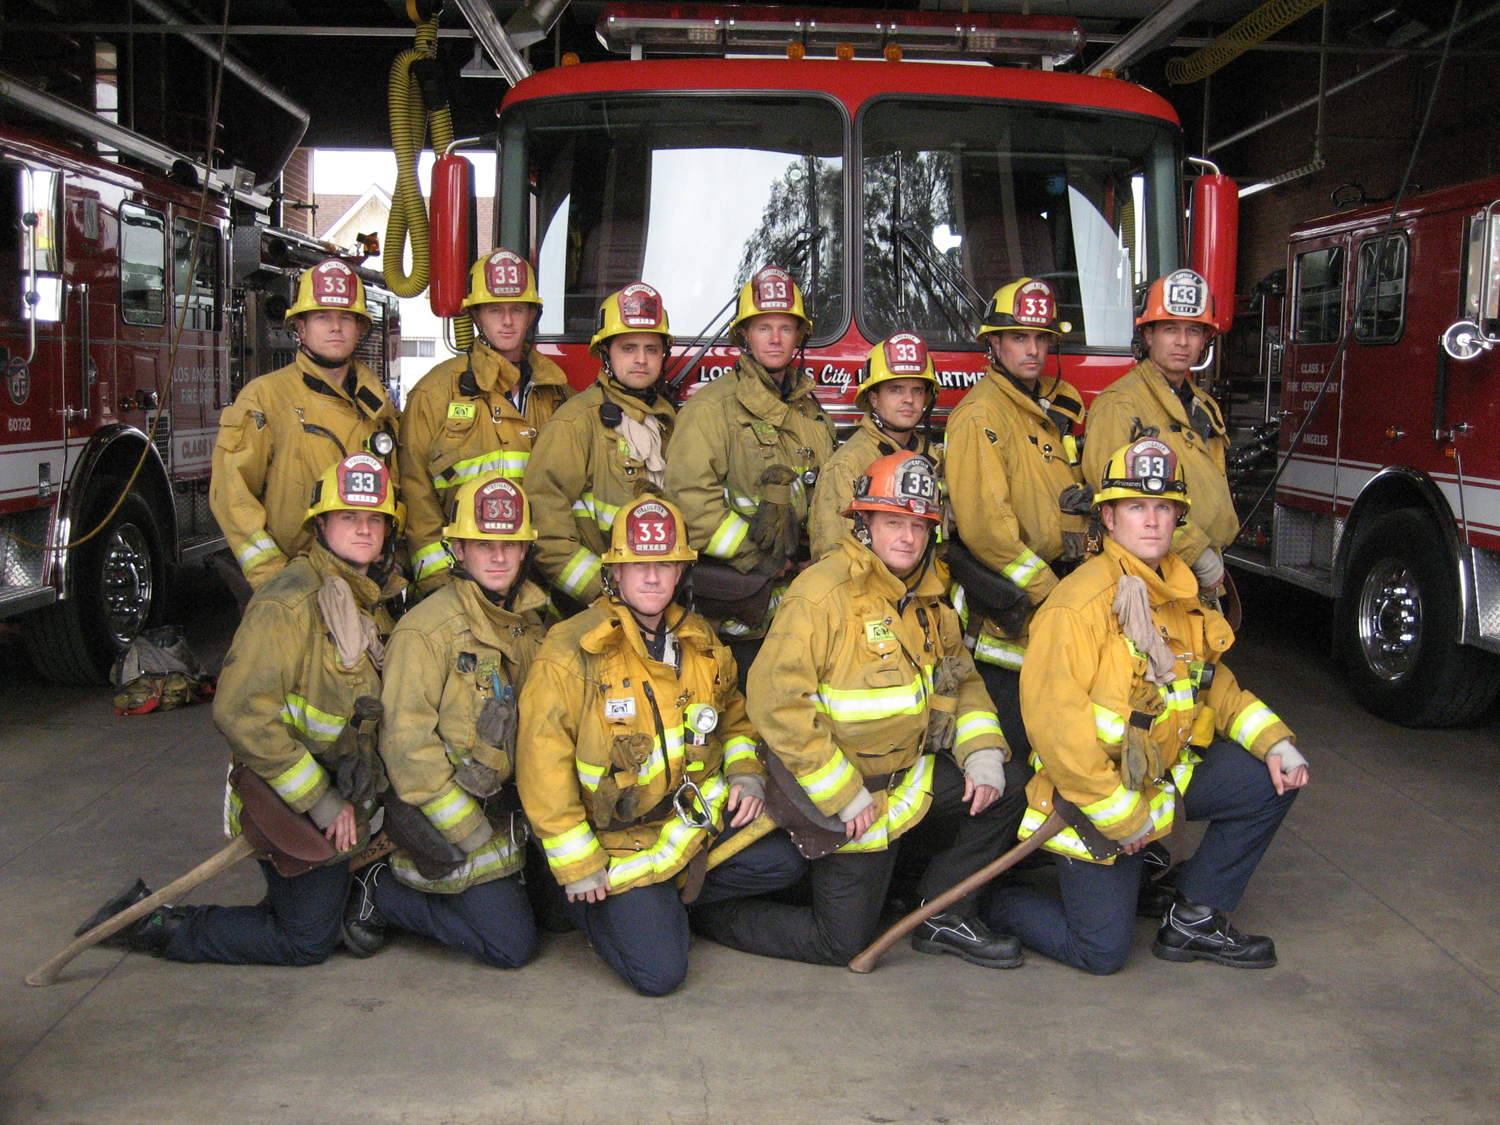 Seagrave Fire Apparatus >> Fire Station 33 Photo Gallery